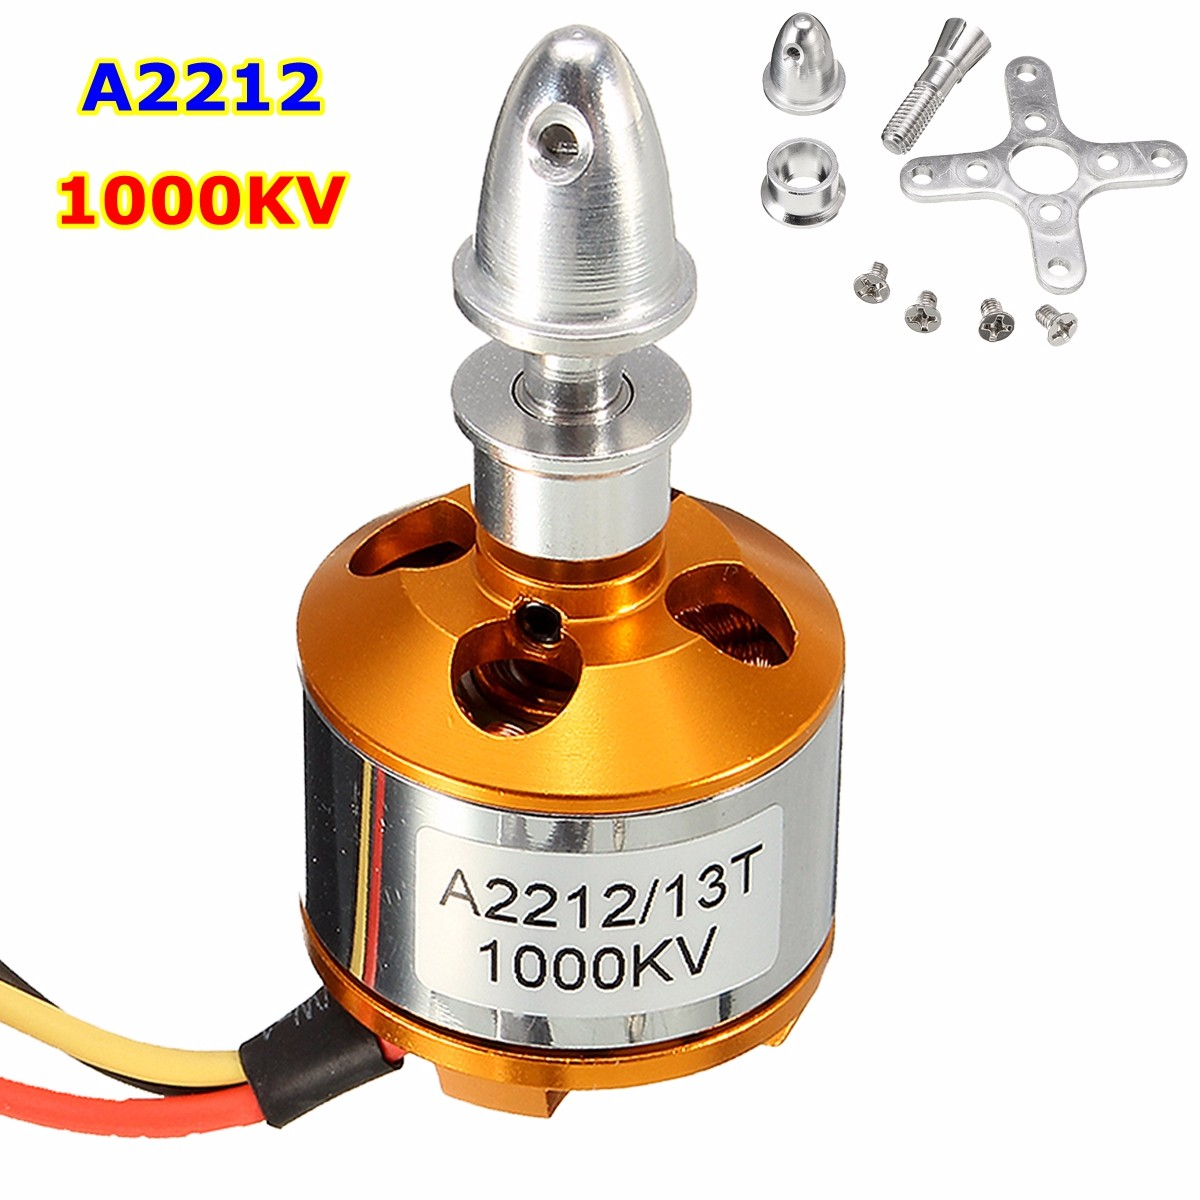 1000Kv A2212 Brushless Drone Outrunner Motor For Aircraft Helicopter Quadcopter xxd a2212 1000kv brushless motor for rc airplane quadcopter